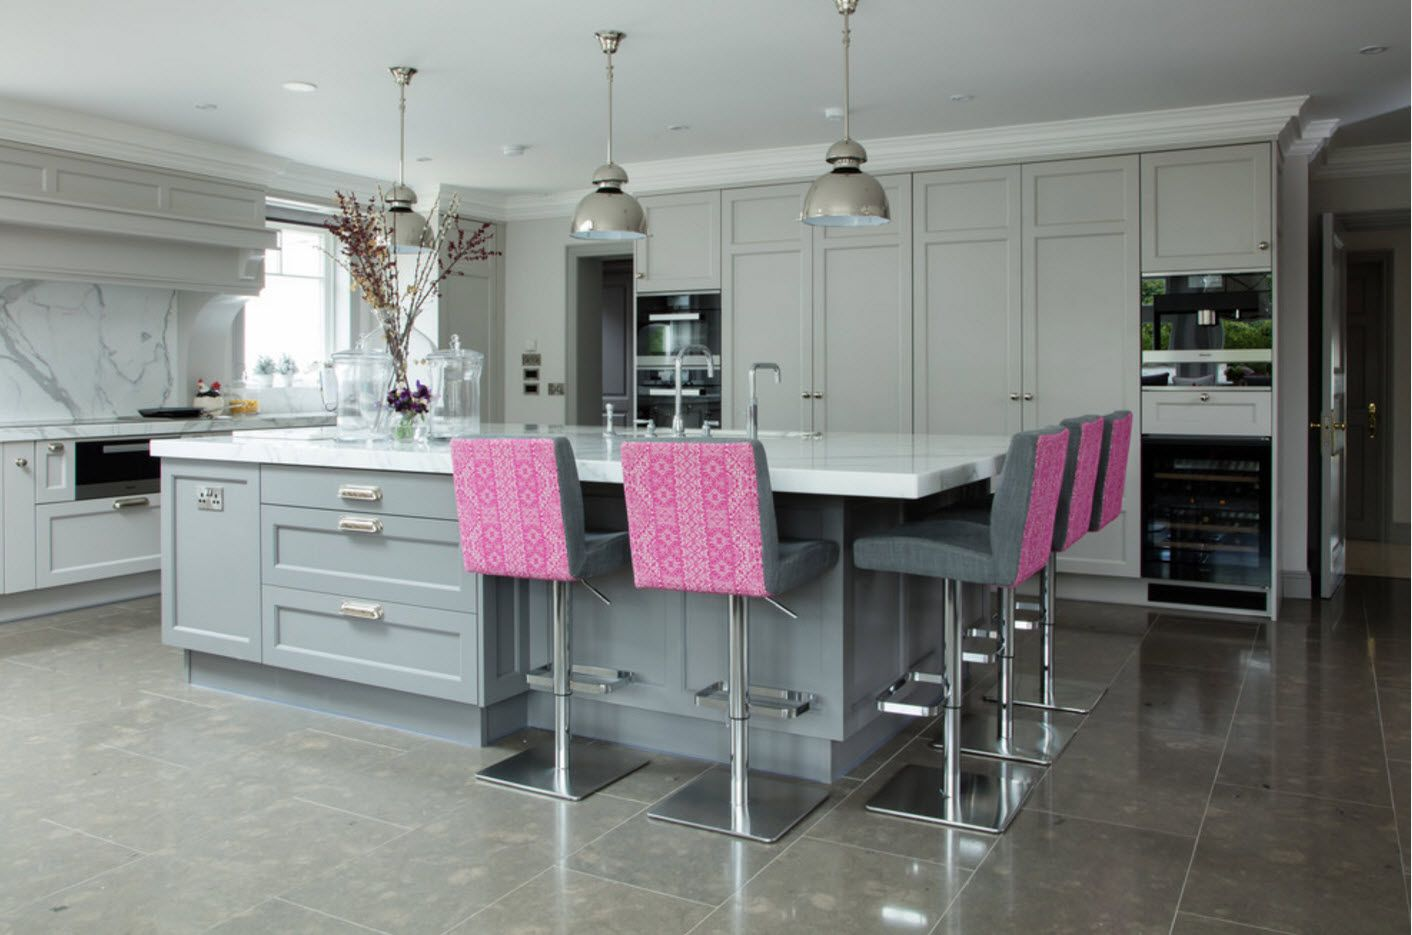 Gray and steel surfaces with pink dolution of the chairs' backrests